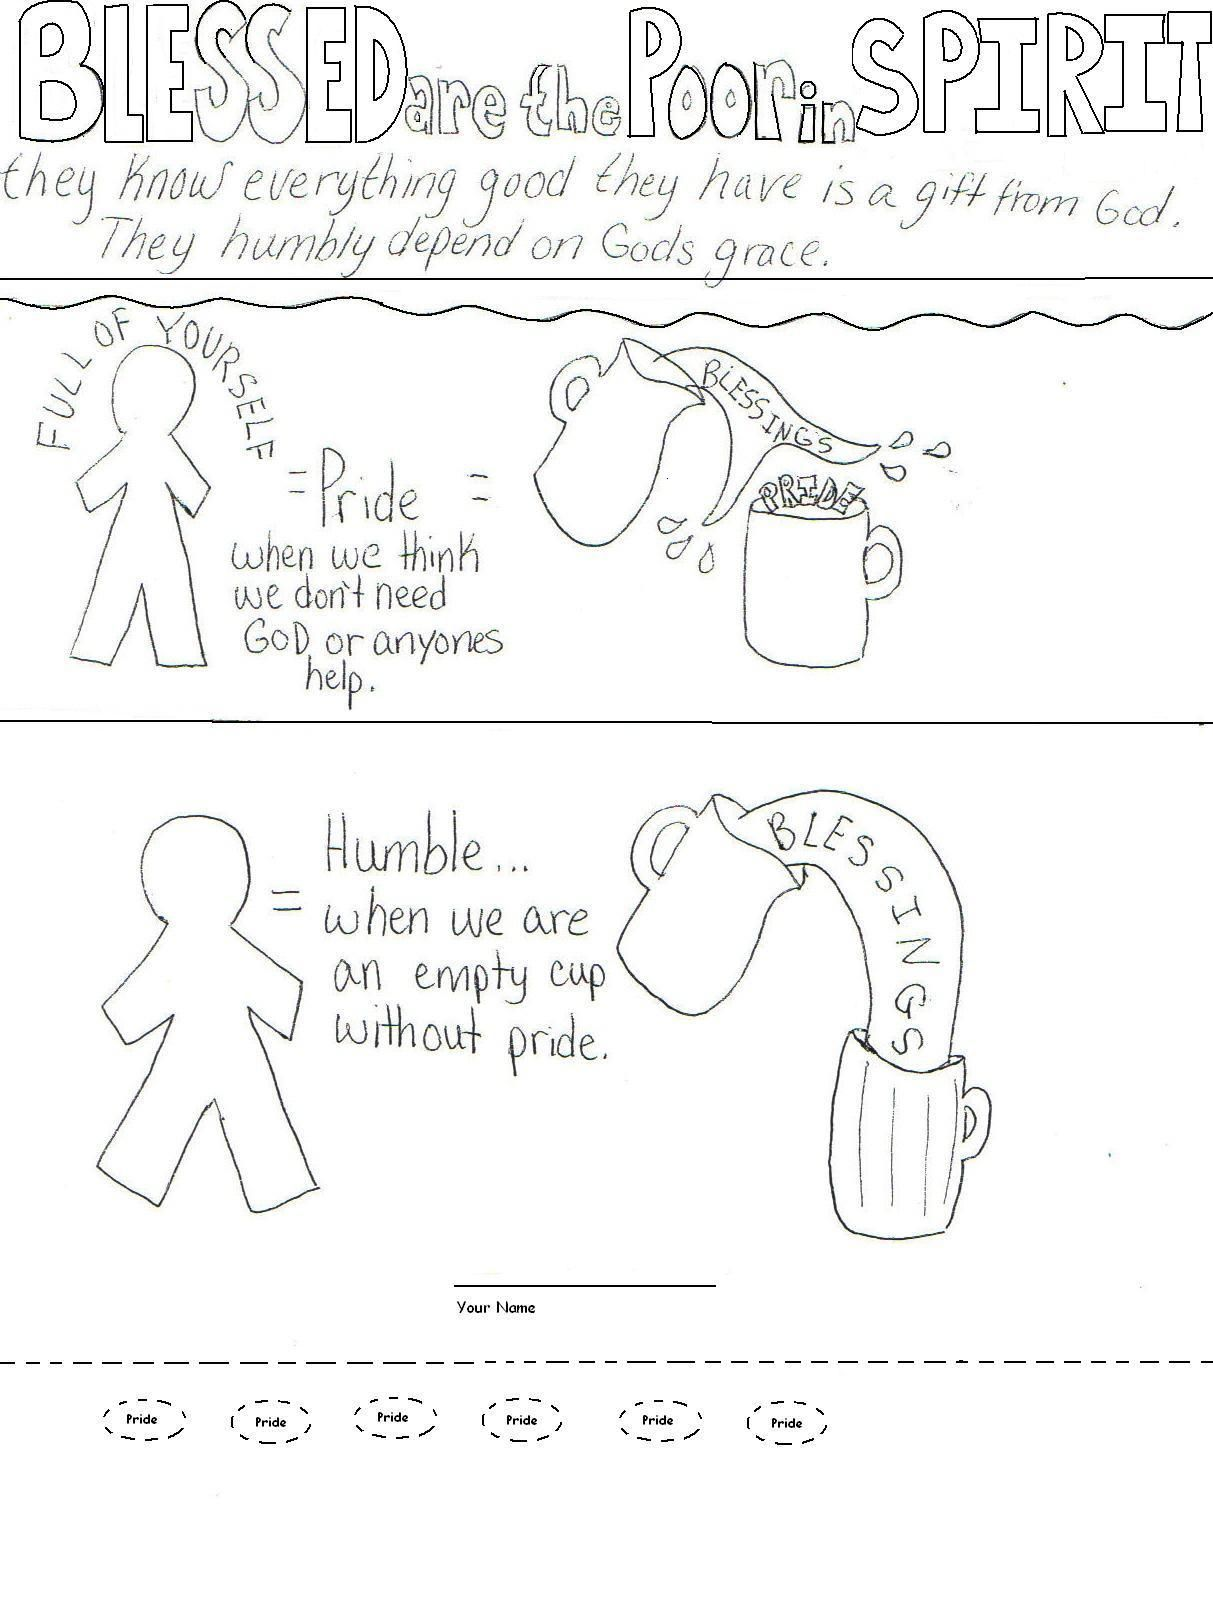 Coloring pages beatitudes - Blessed Are The Poor In Spirit I Love This Depiction It Really